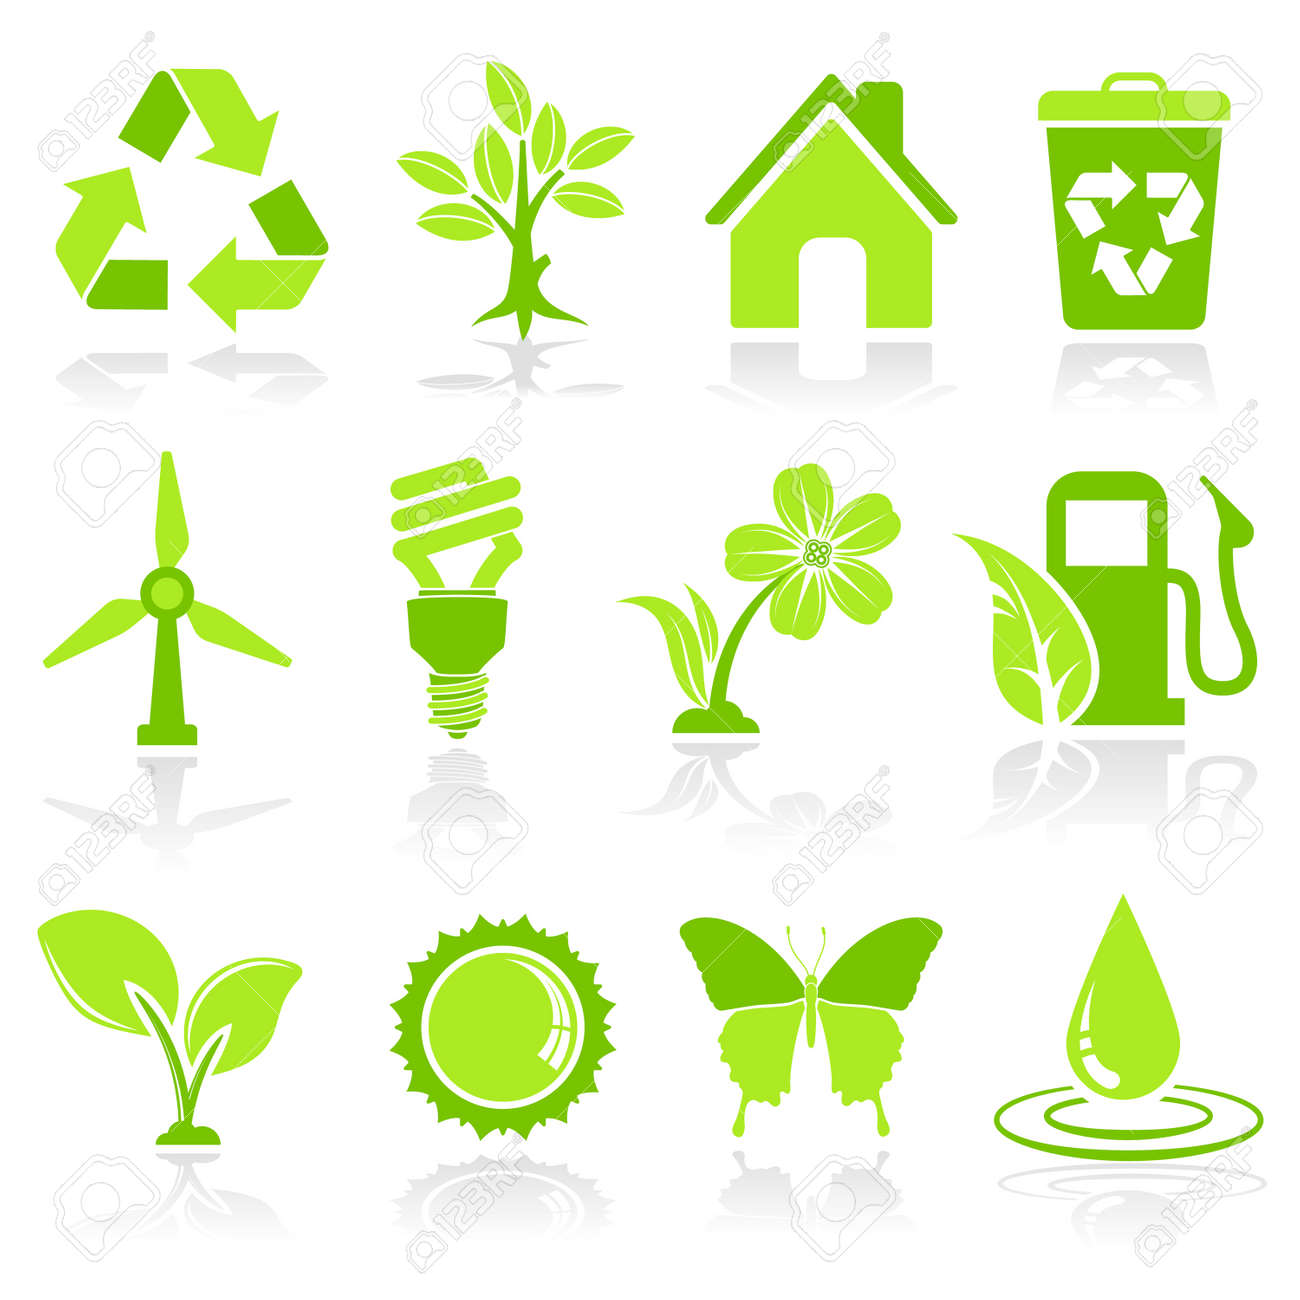 Collect environment icon with tree leaf light bulb recycling collect environment icon with tree leaf light bulb recycling symbol vector isolated buycottarizona